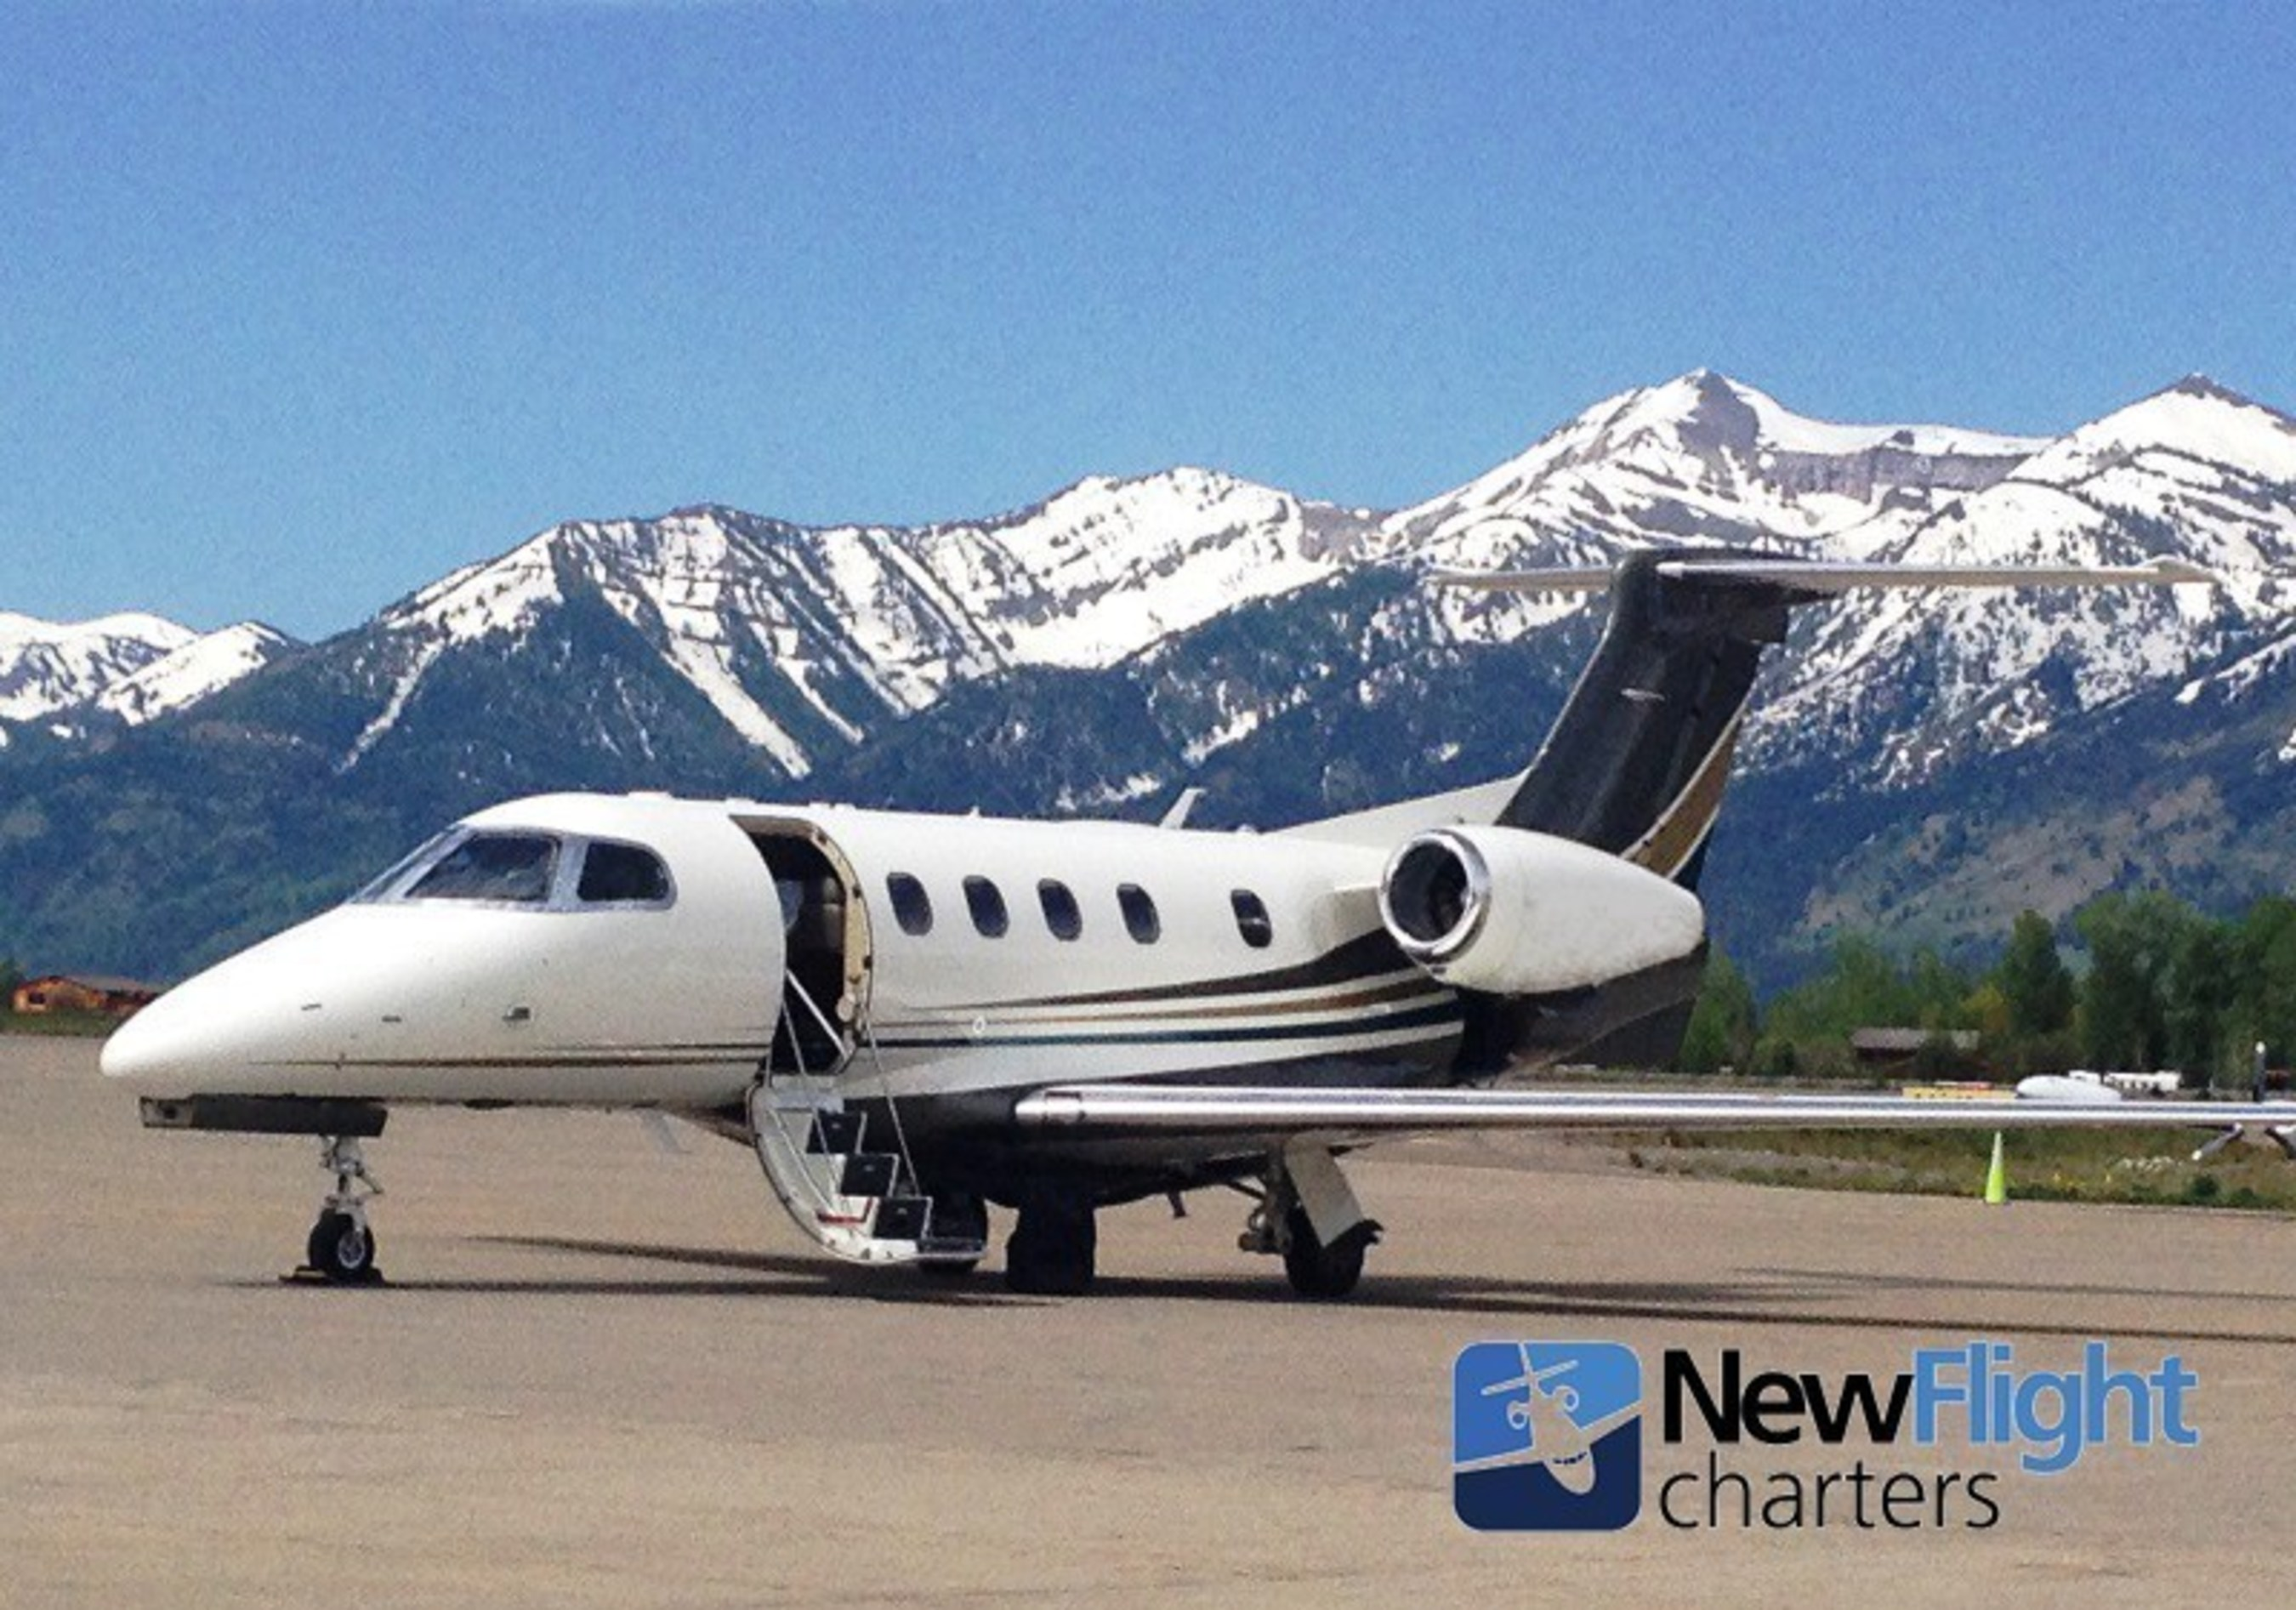 new flight charters launches jet charter resource for colorado private flight information new flight charters launches jet charter resource for colorado private flight information